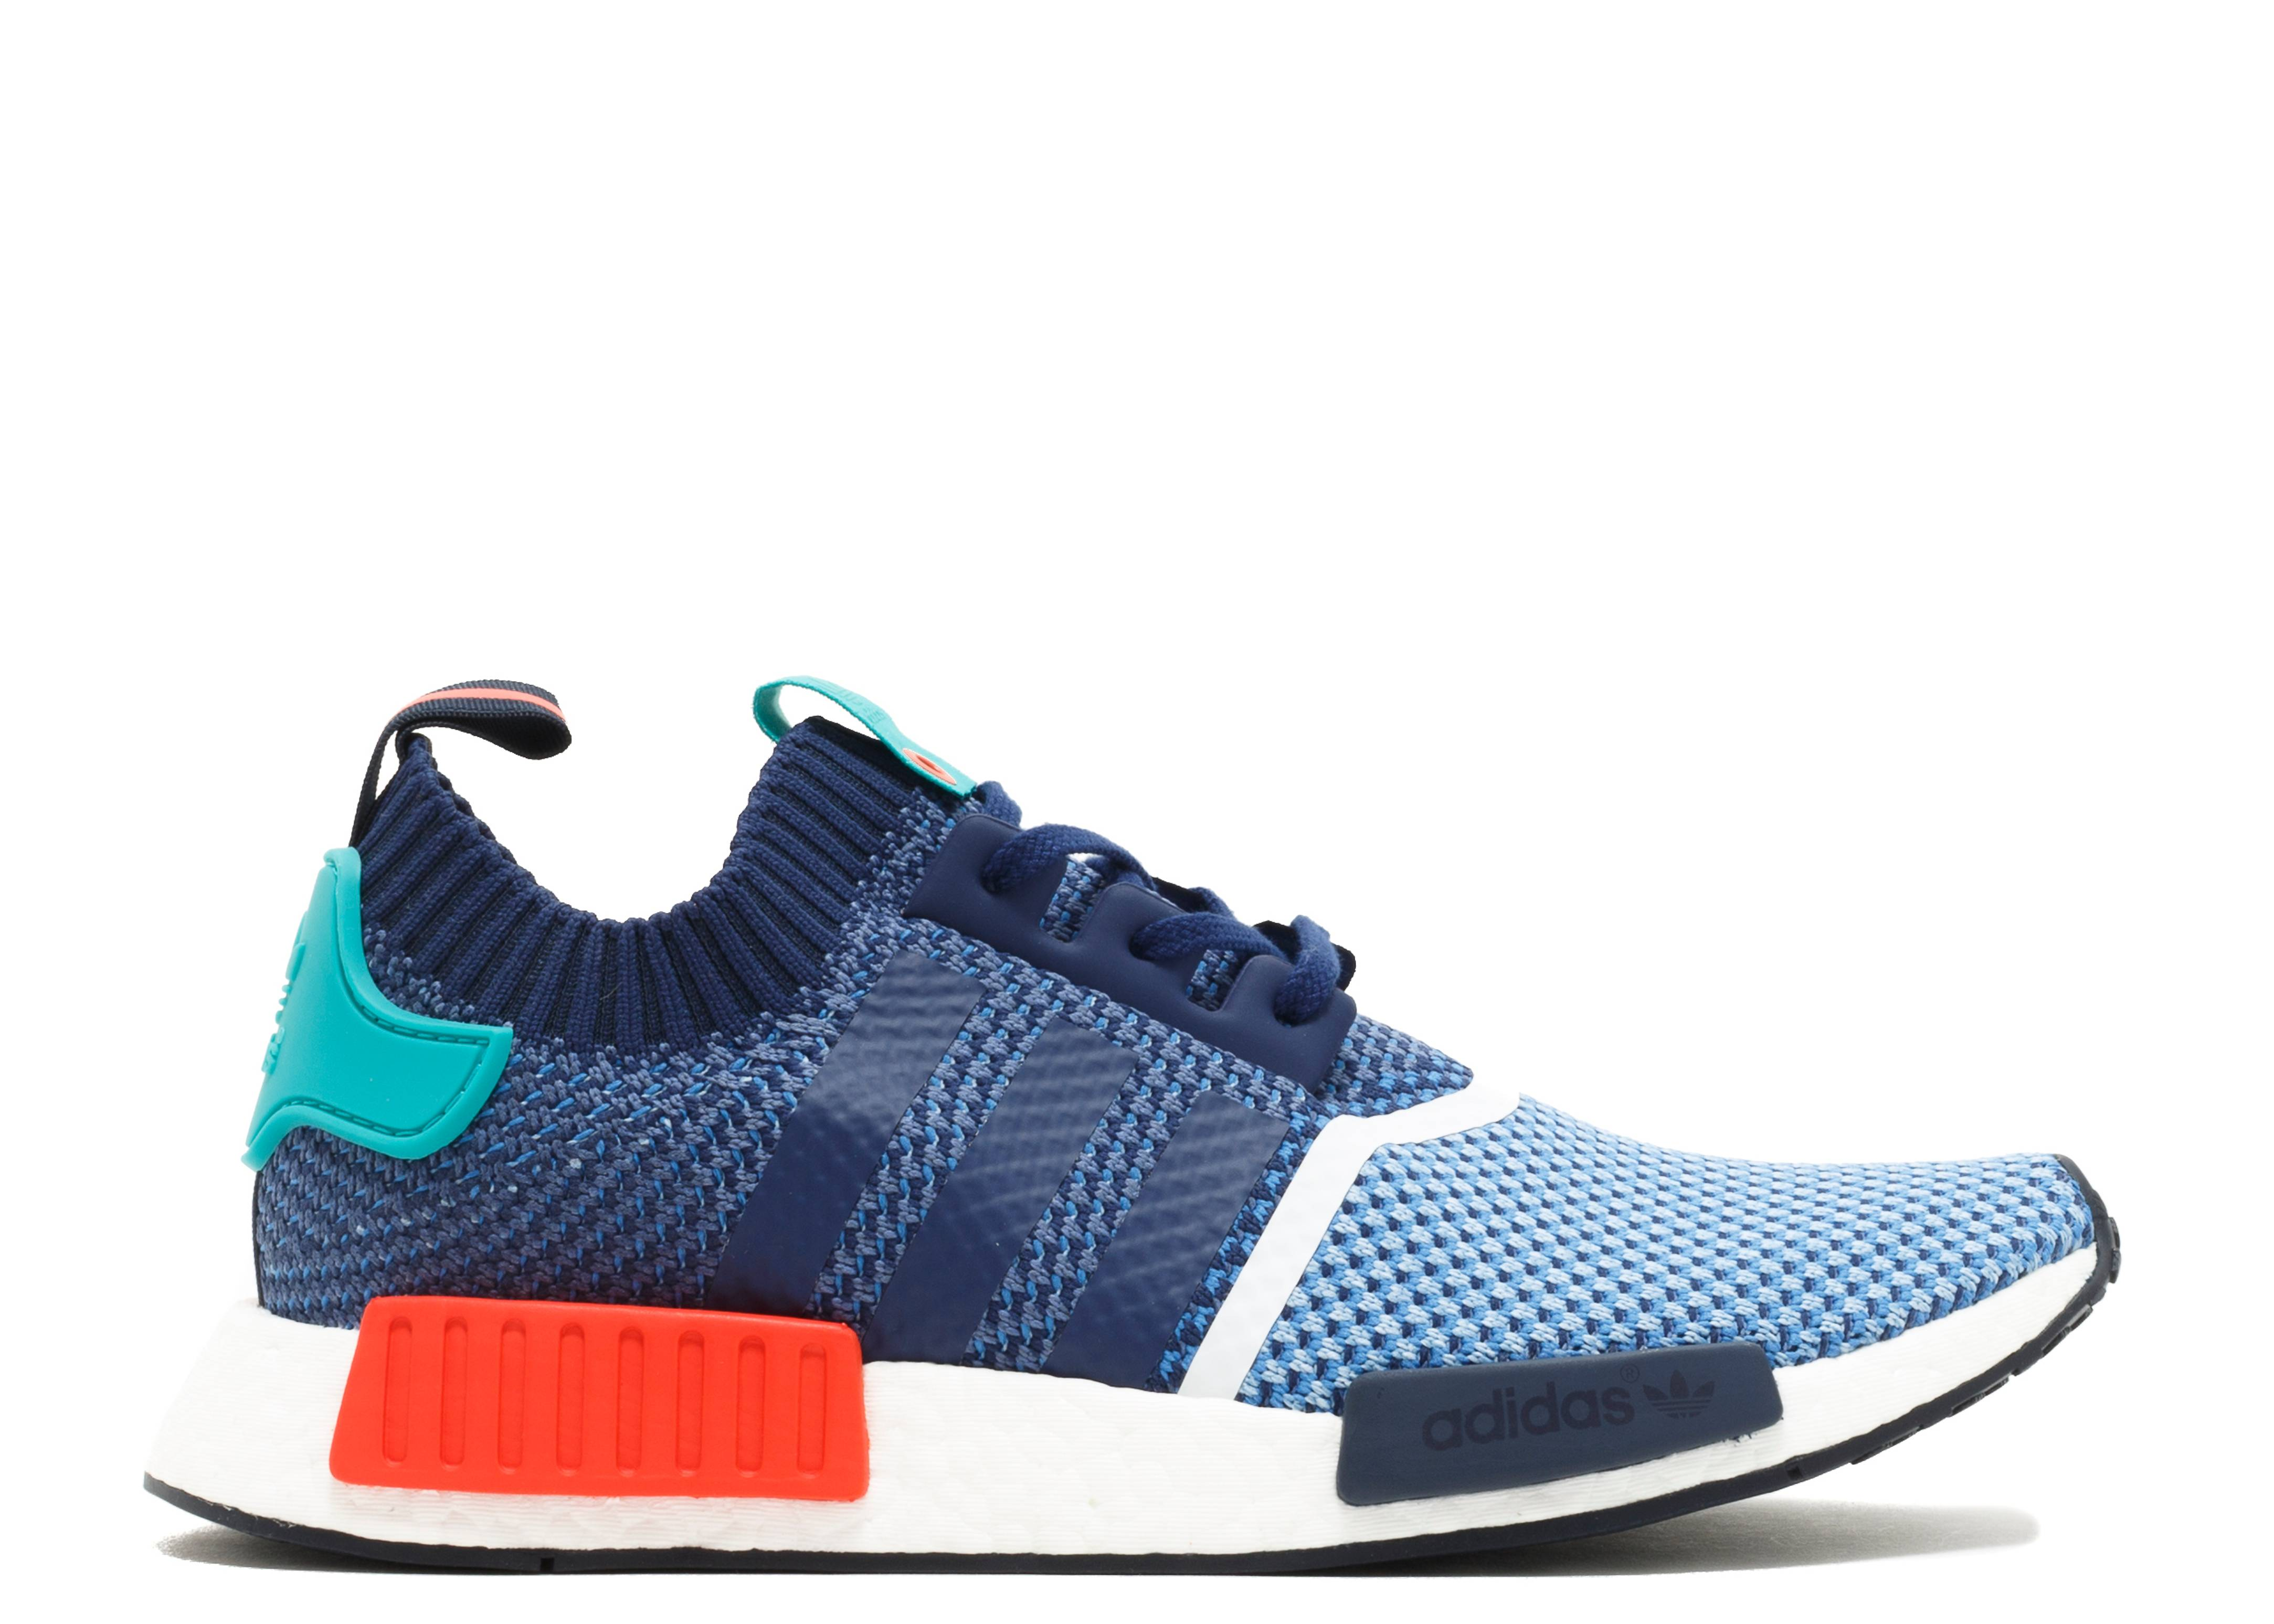 Packers Shoes X Adidas Nmd R Pk